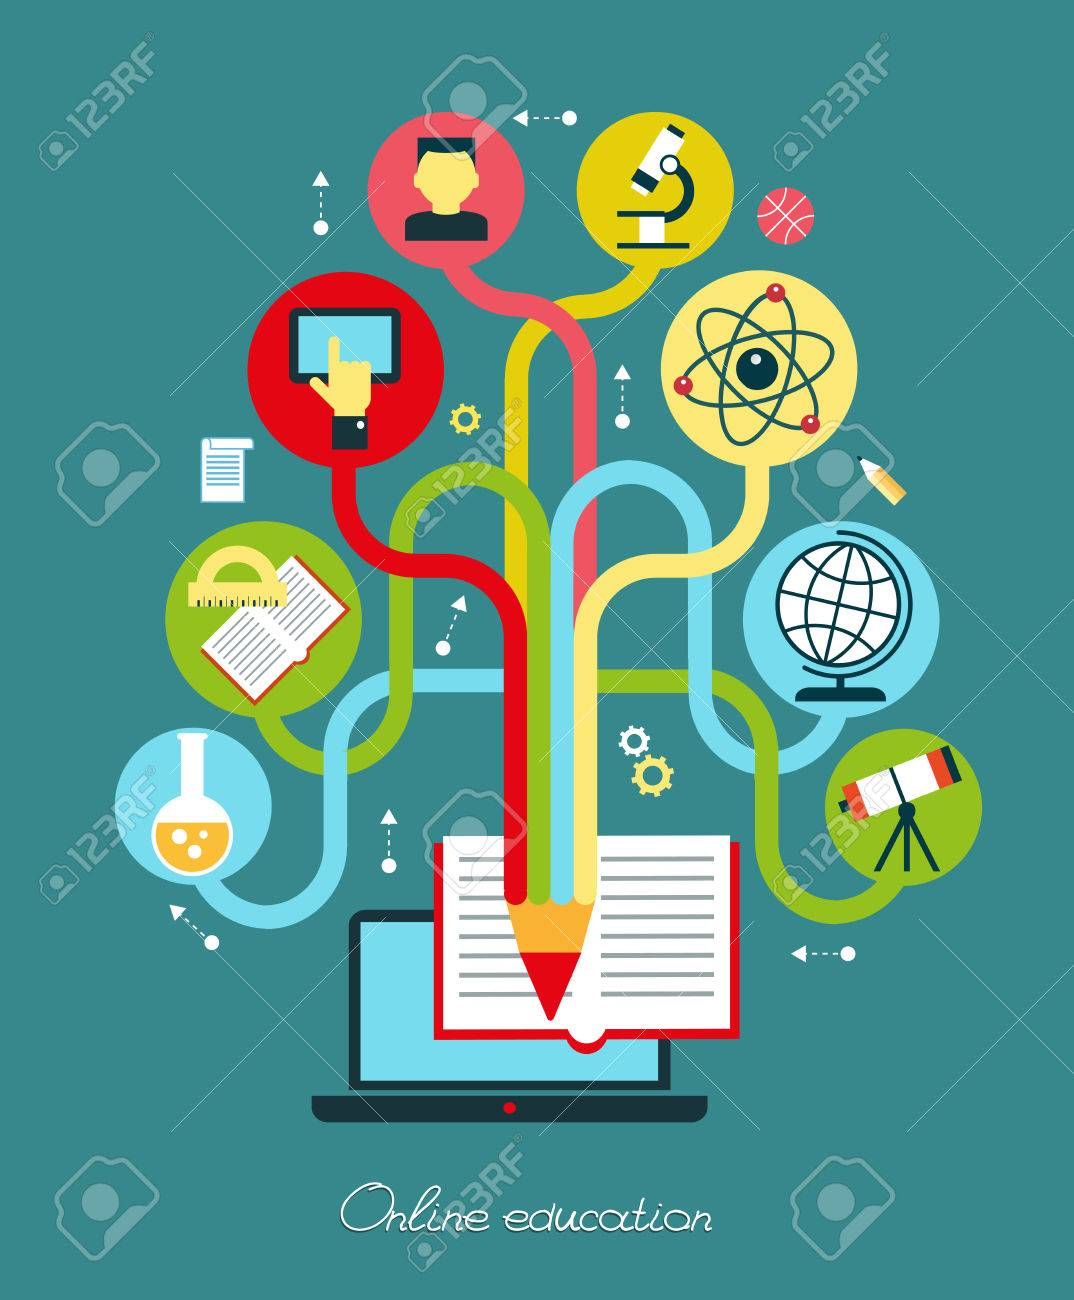 Modern vector illustration concept. Iinfographics background education. Concept of online education. - 46515298